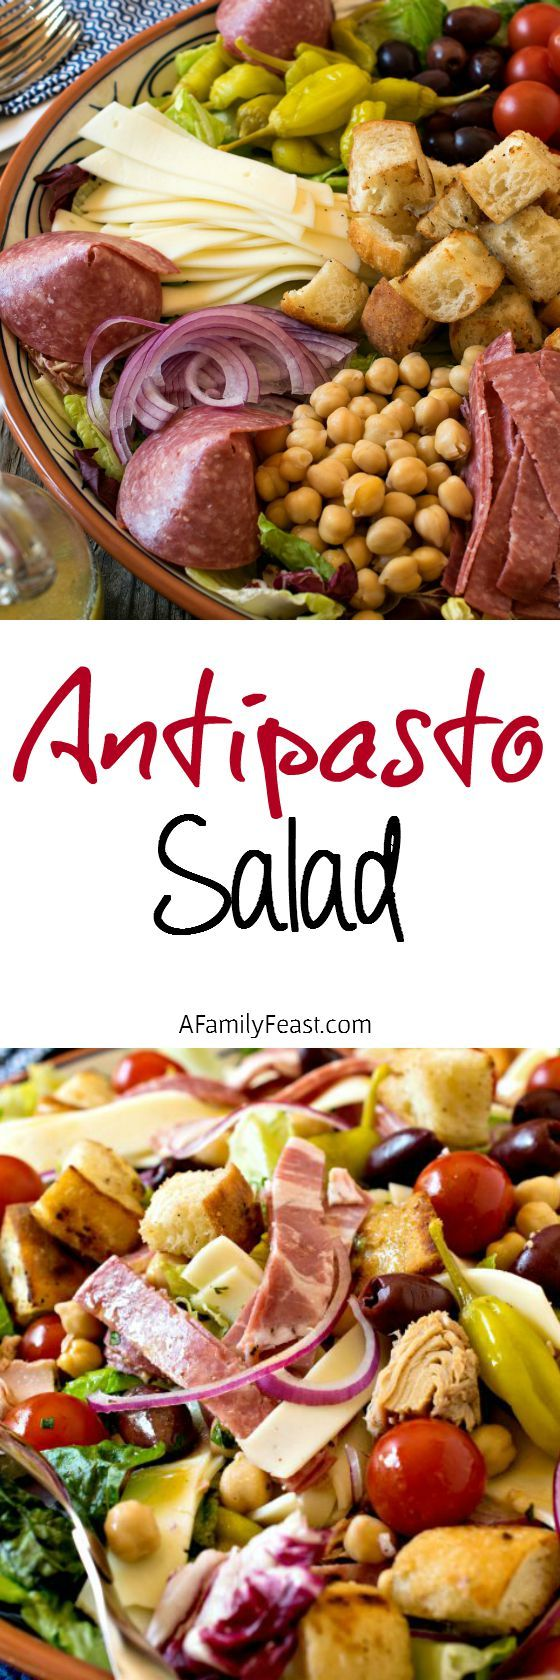 Antipasto Salad - This classic Italian salad is simple and delicious!